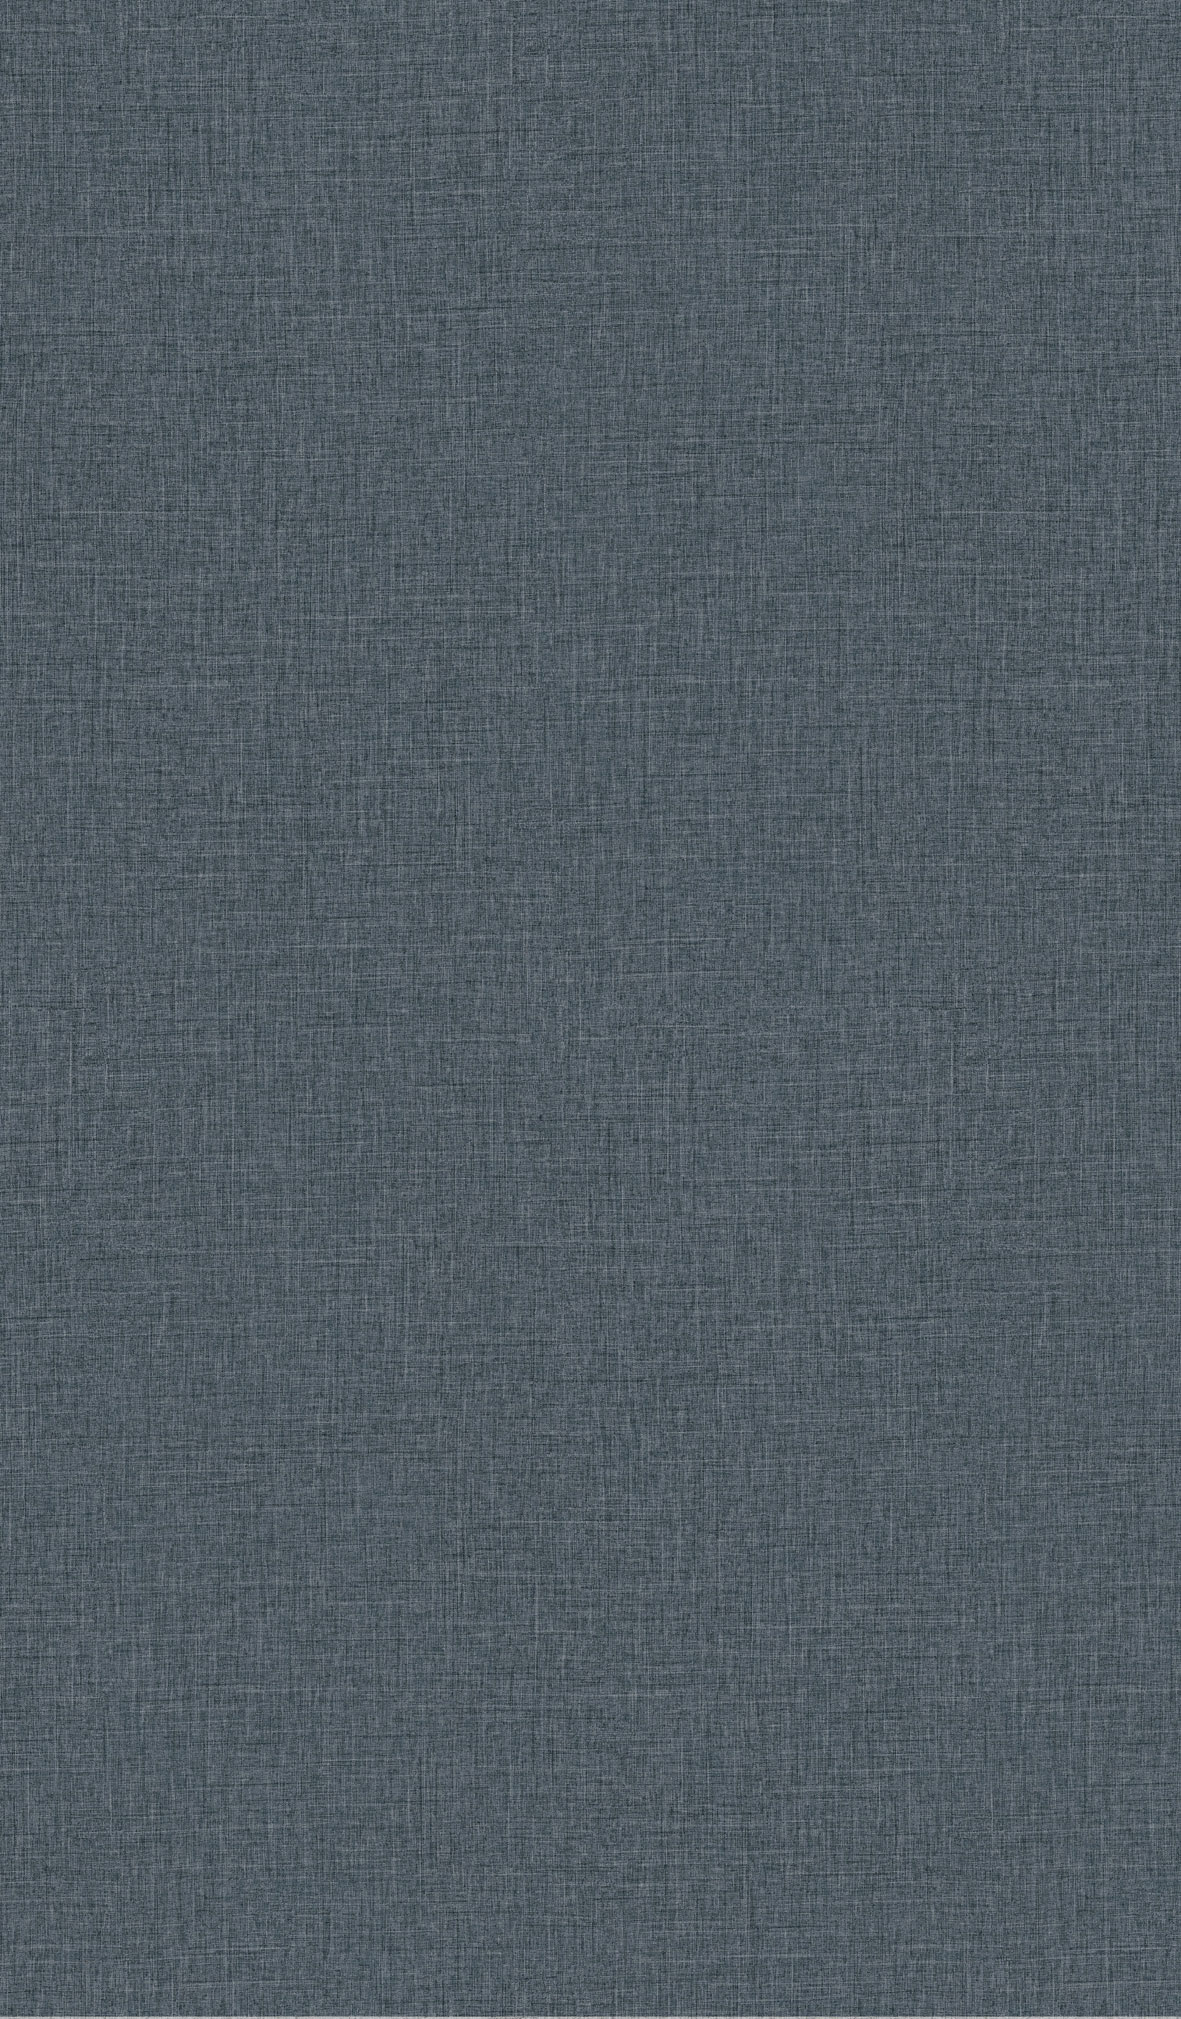 Denim Twist,BC8